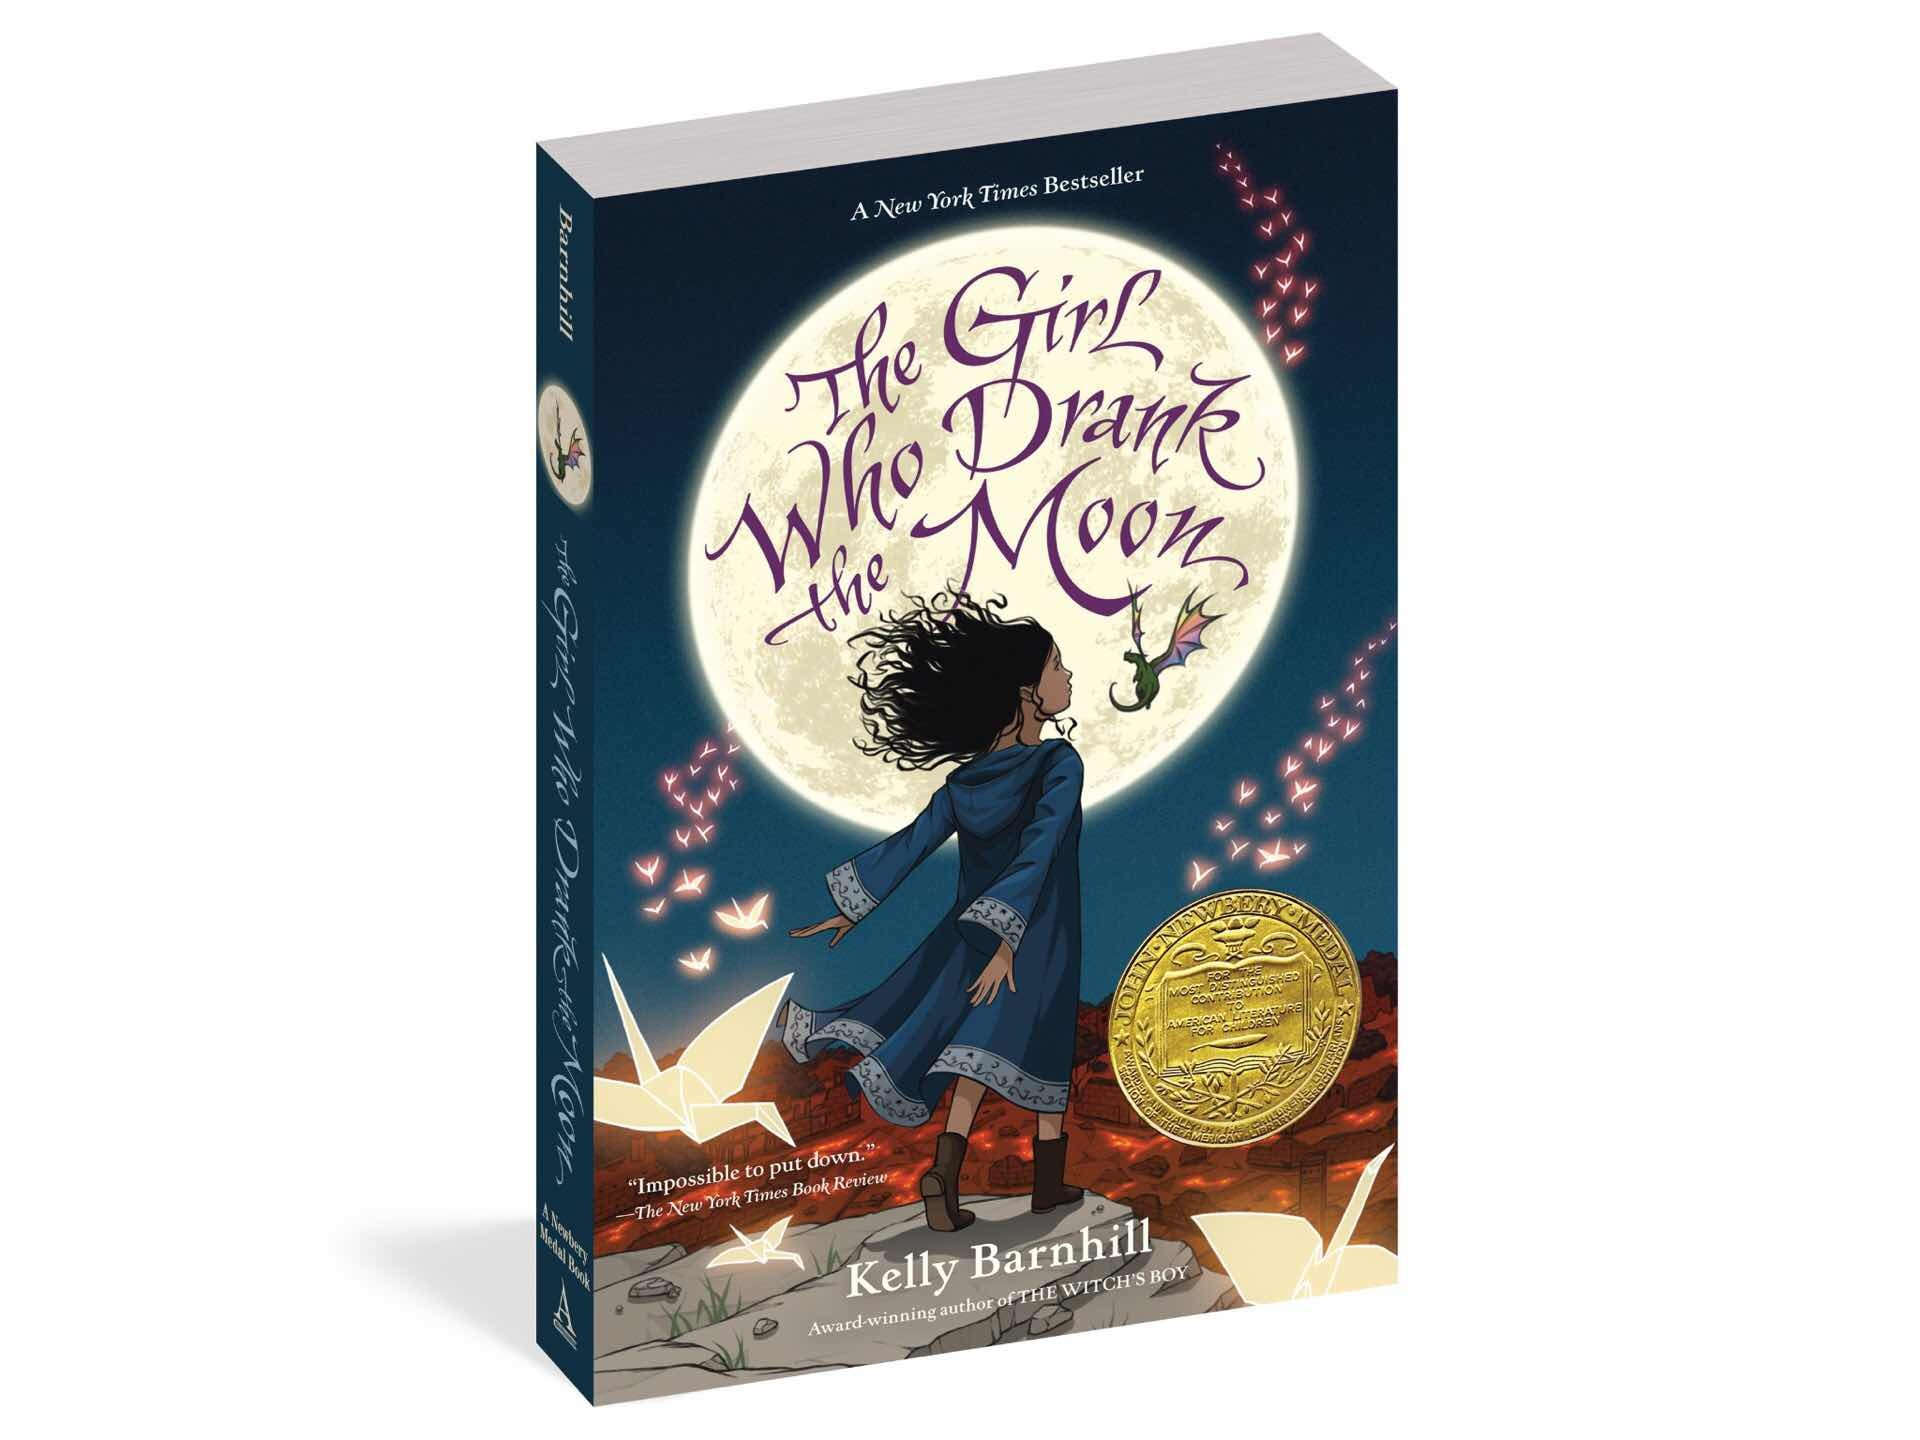 The Girl Who Drank the Moon by Kelly Barnhill.